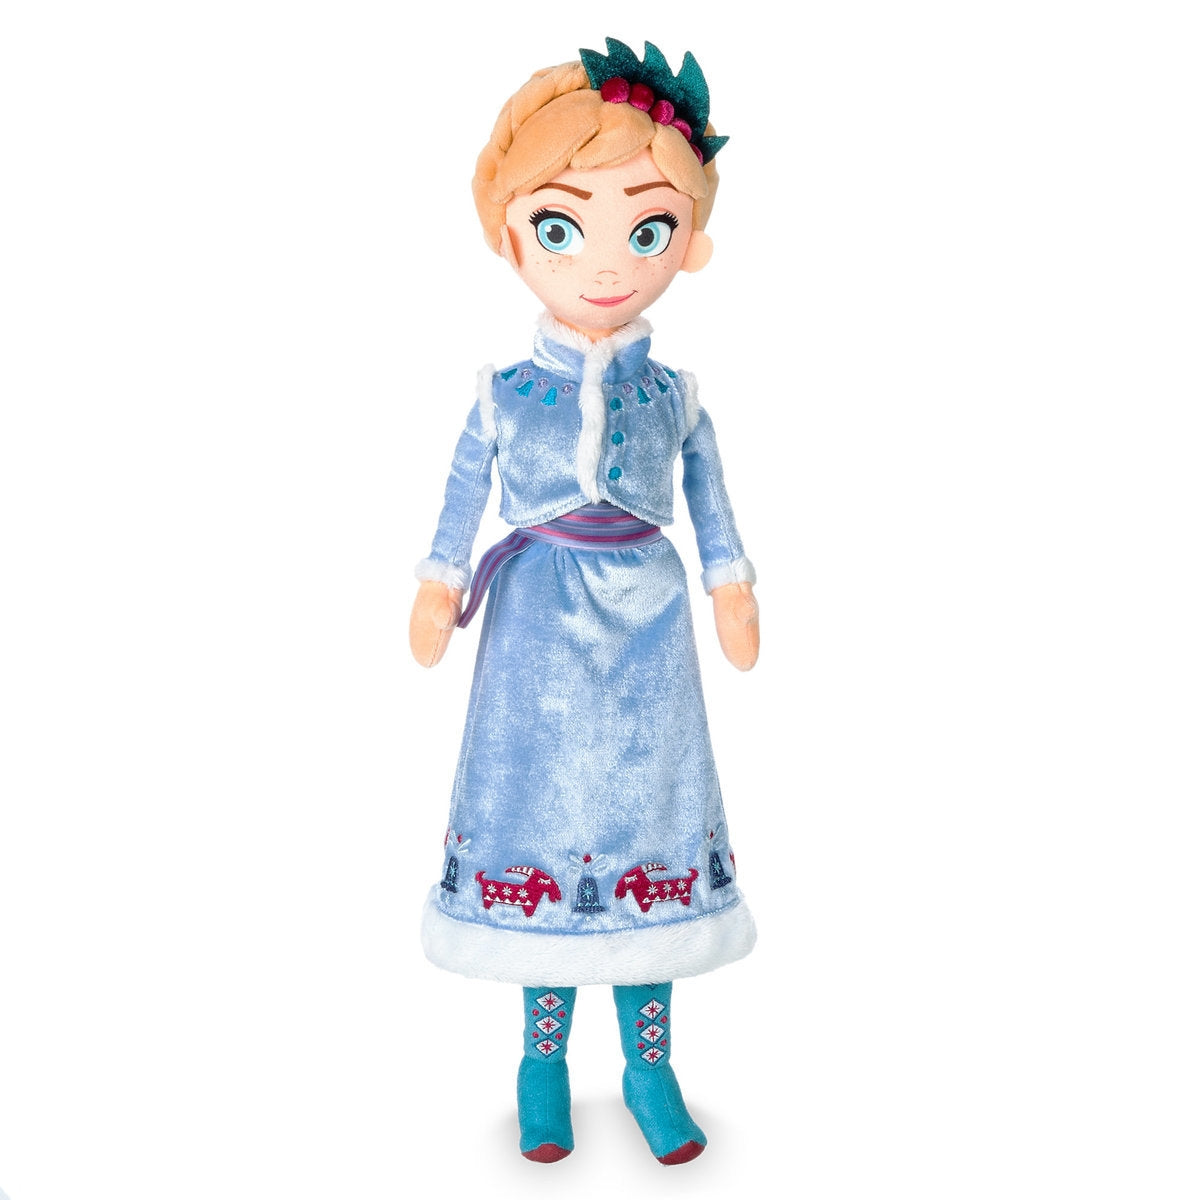 Anna Plush Doll - Olafs Frozen Adventure - Medium - 18.5 inch